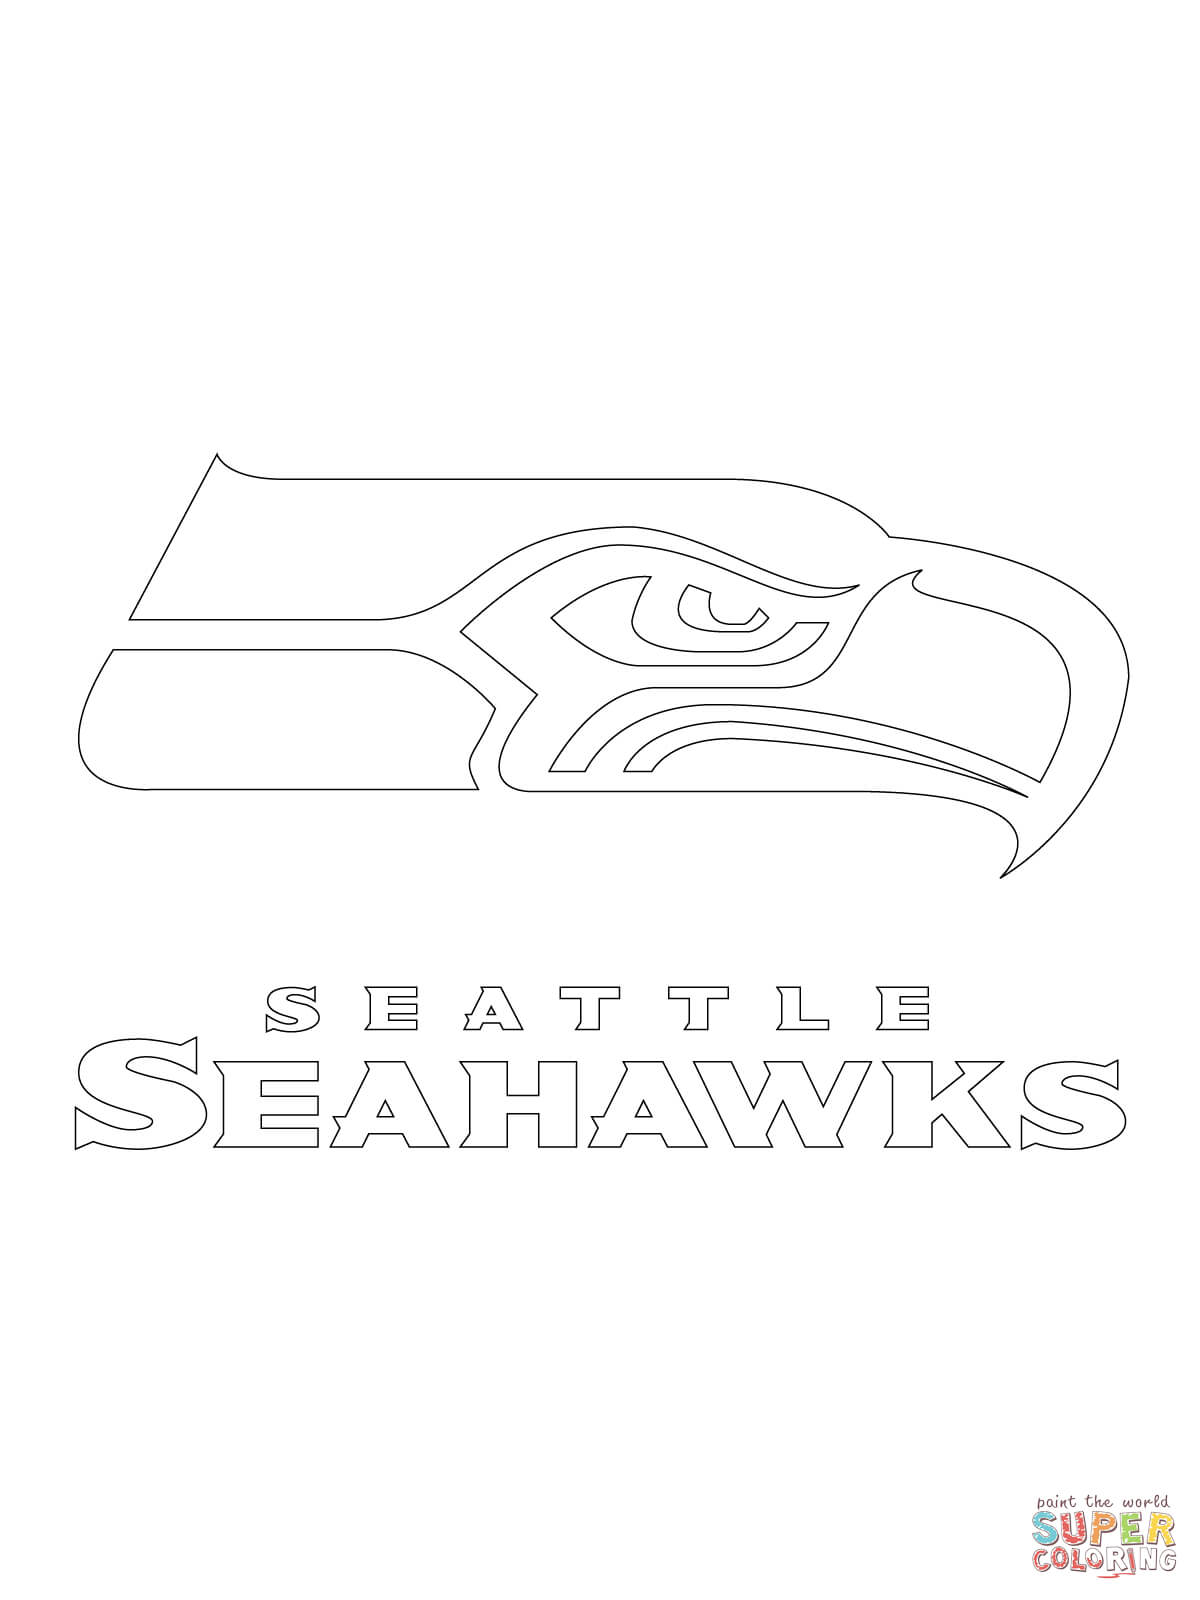 seattle seahawks logo coloring pages seattle seahawks logo coloring page free nfl coloring seahawks coloring logo seattle pages